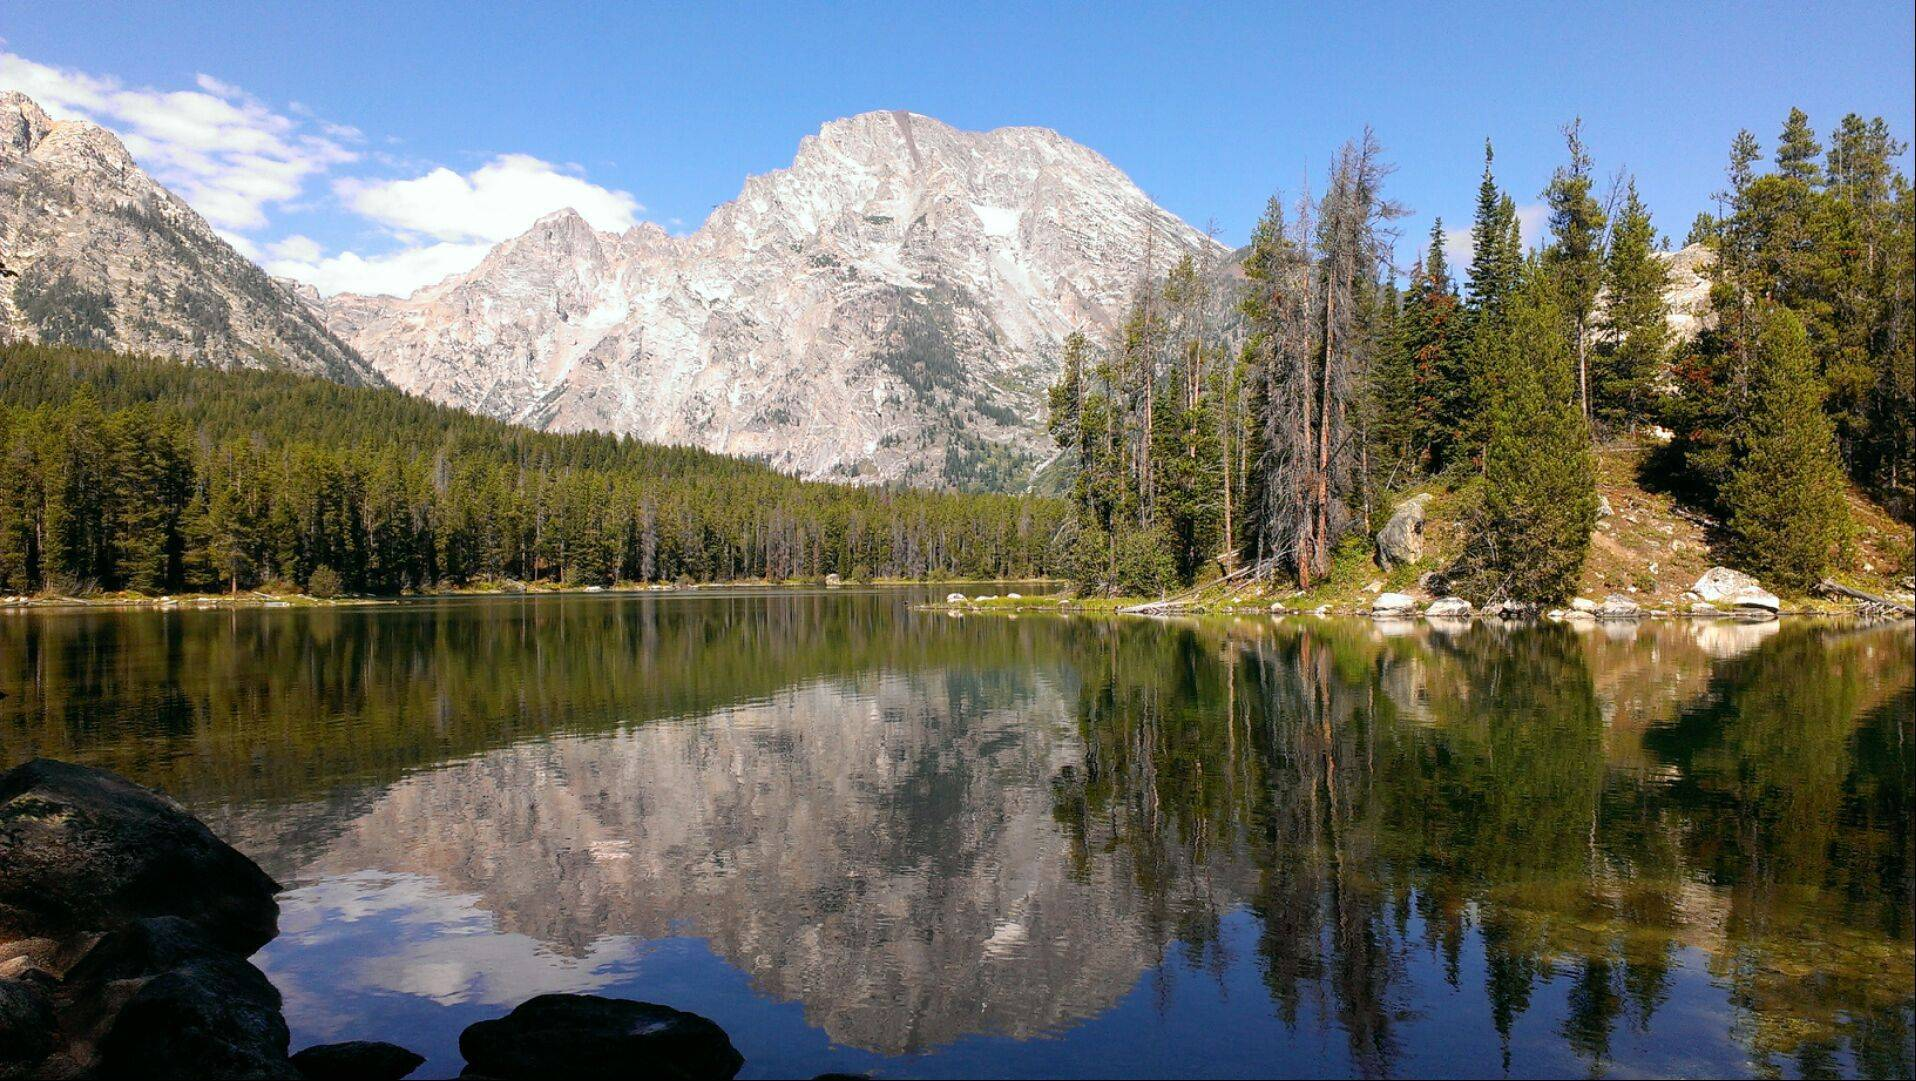 We were hiking on the String Lake Trail in the Grand Teton National Park in September. We took the portage trail to Leigh Lake and this is the photo I took at the end of the portage.